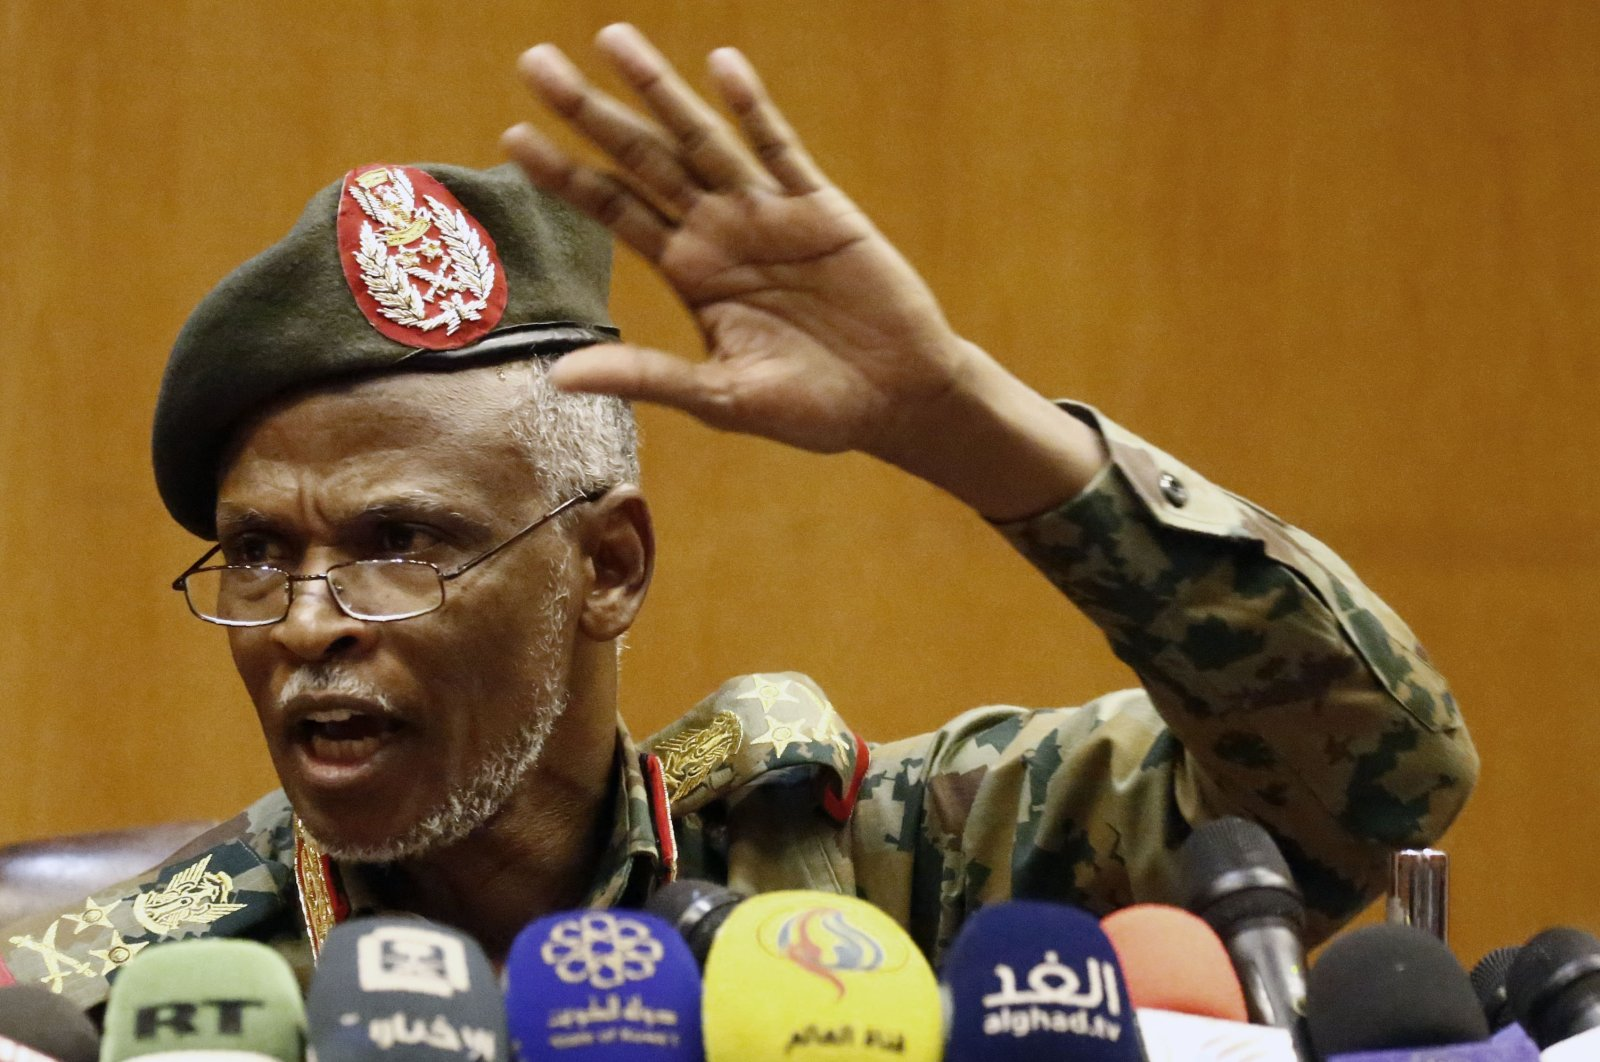 Lieutenant General Omar Zain al-Abdin, the head of the new Sudanese military council's political committee, speaks at a news conference one day after Sudan's army ousted the Arab-African country's veteran president Omar al-Bashir, in the capital Khartoum, Sudan, April 12, 2019. (AFP Photo)